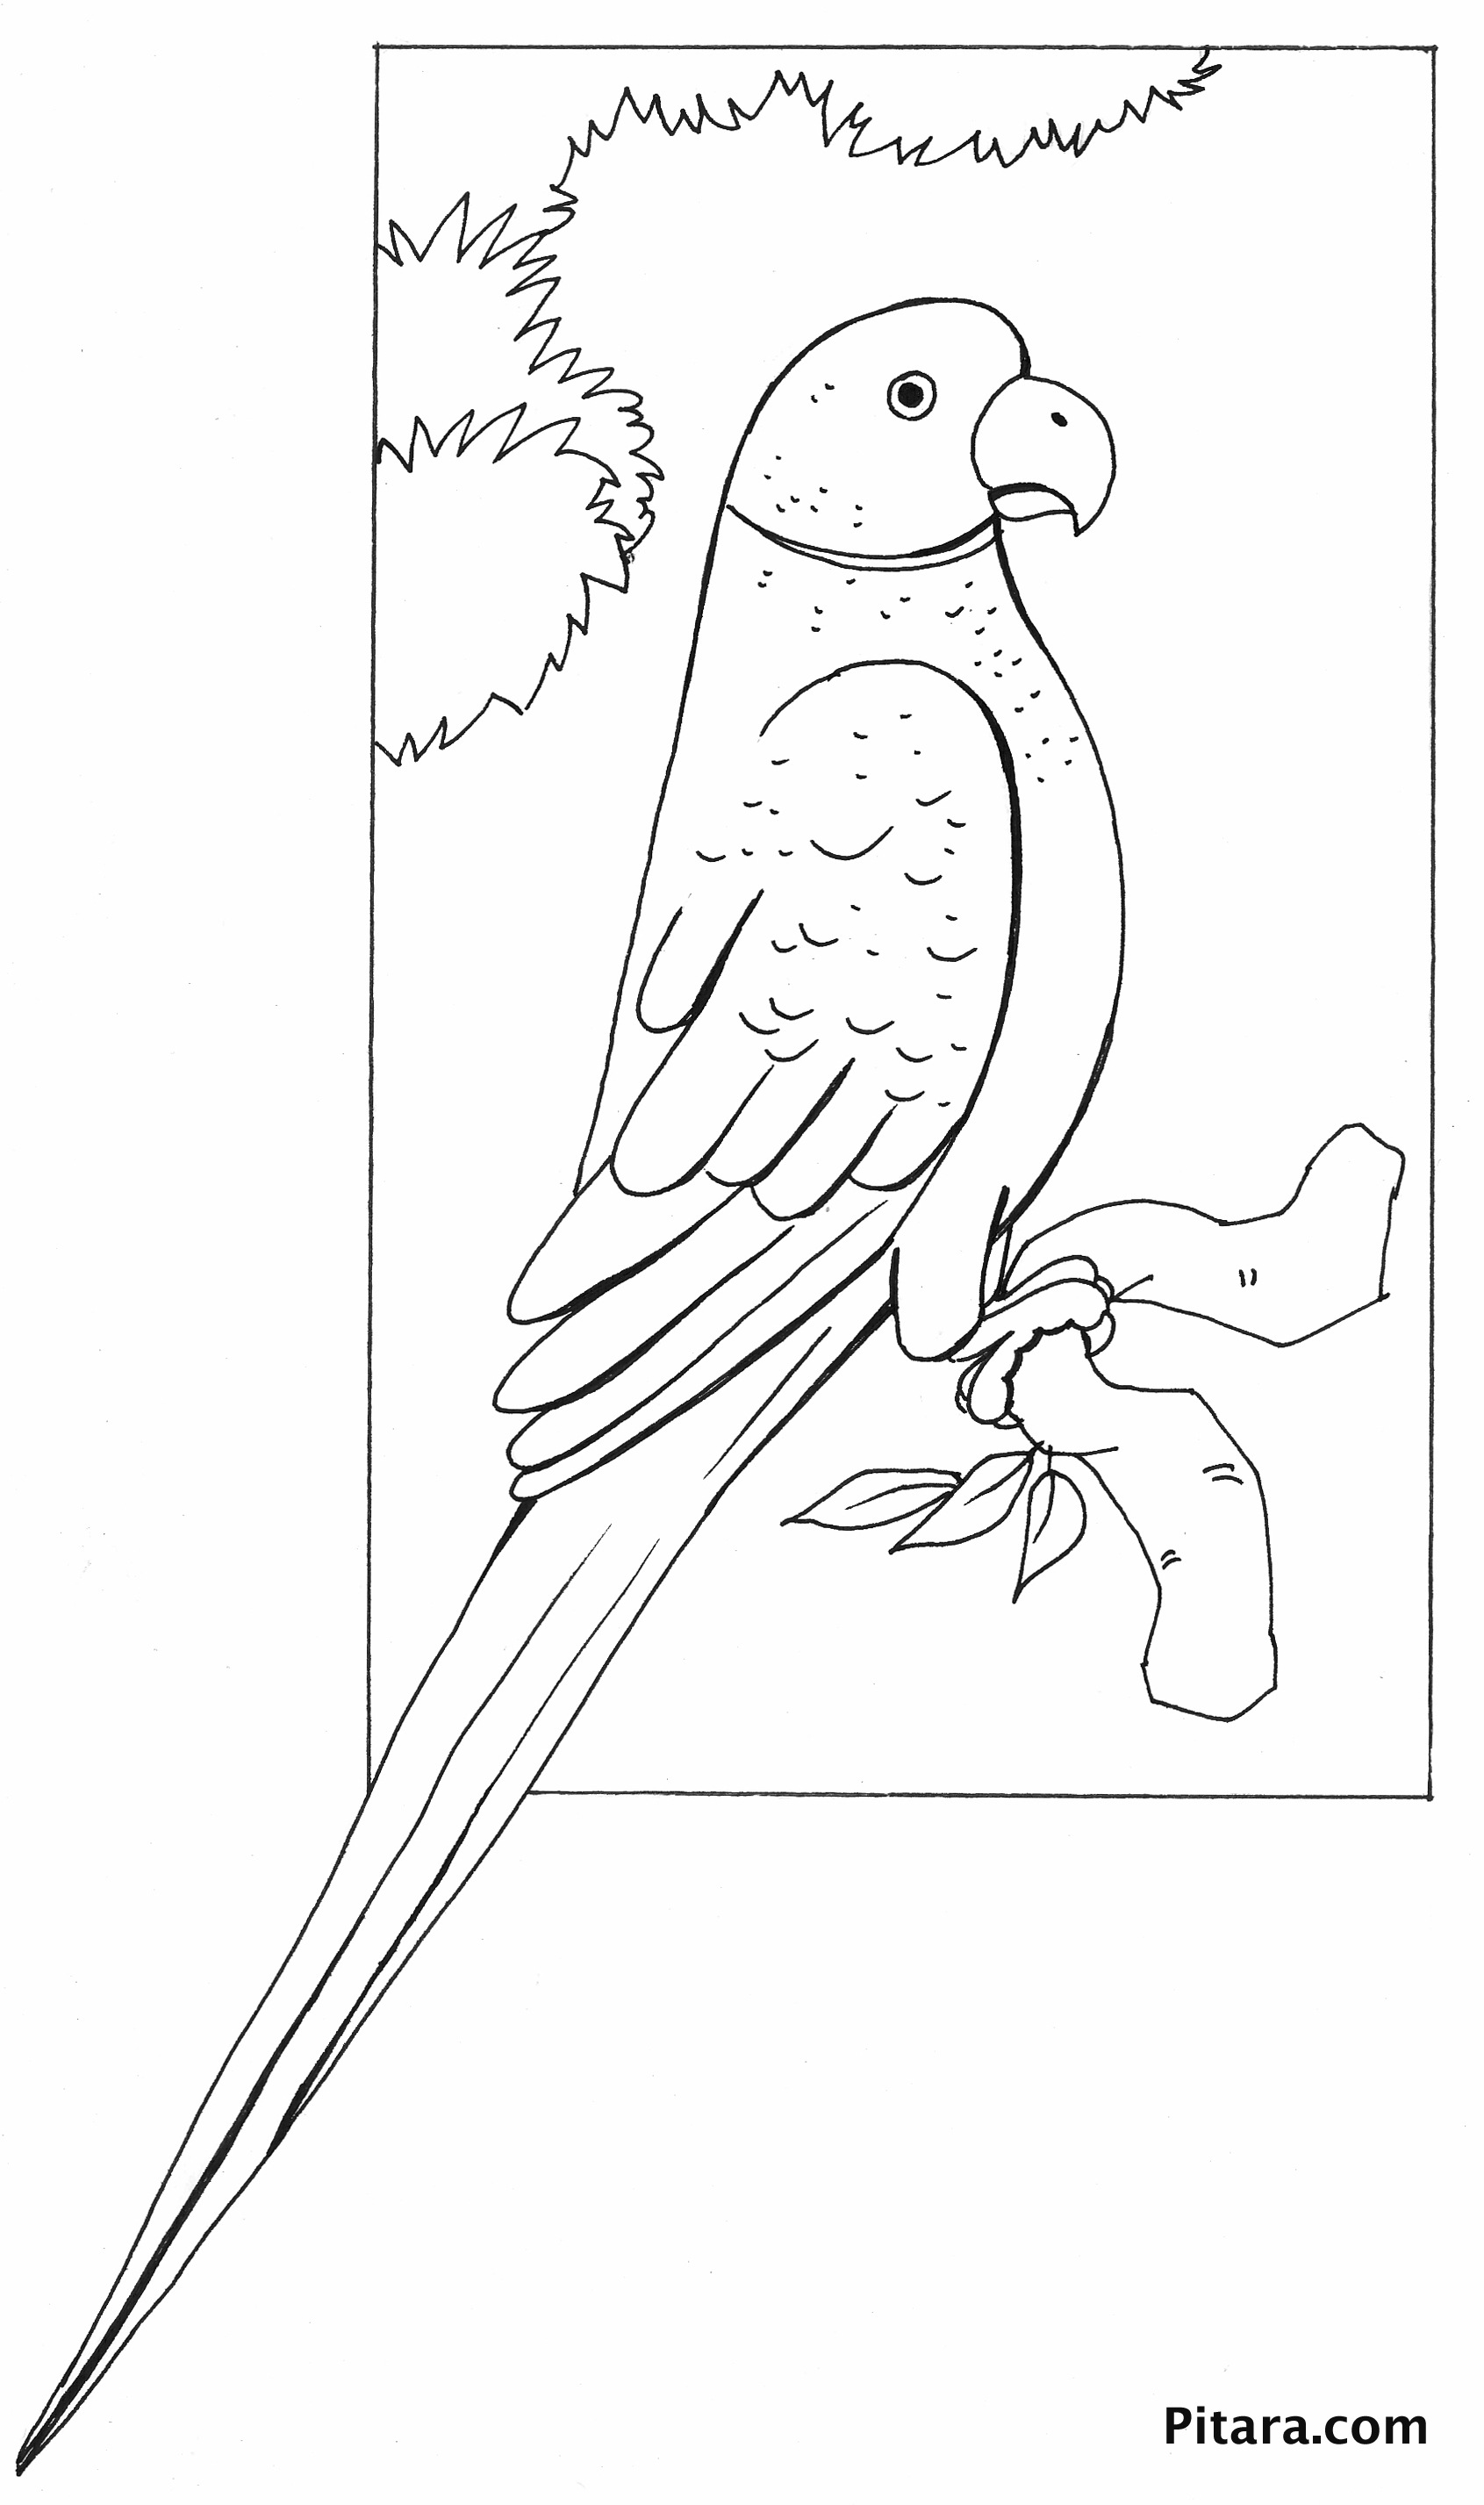 Parrot coloring page pitara kids network for Coloring page parrot